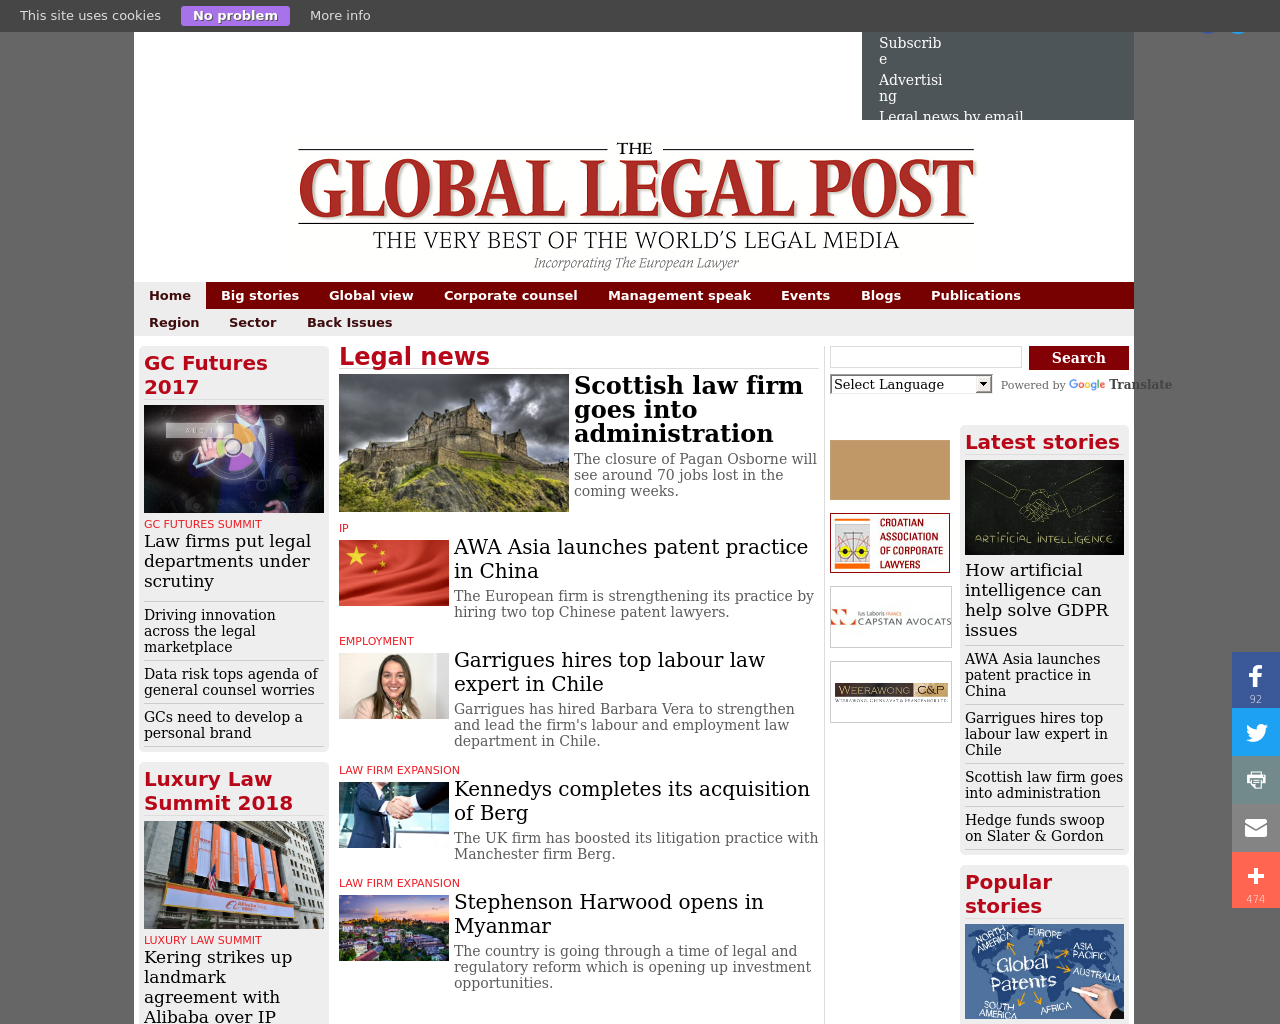 Global-Legal-Post-Advertising-Reviews-Pricing